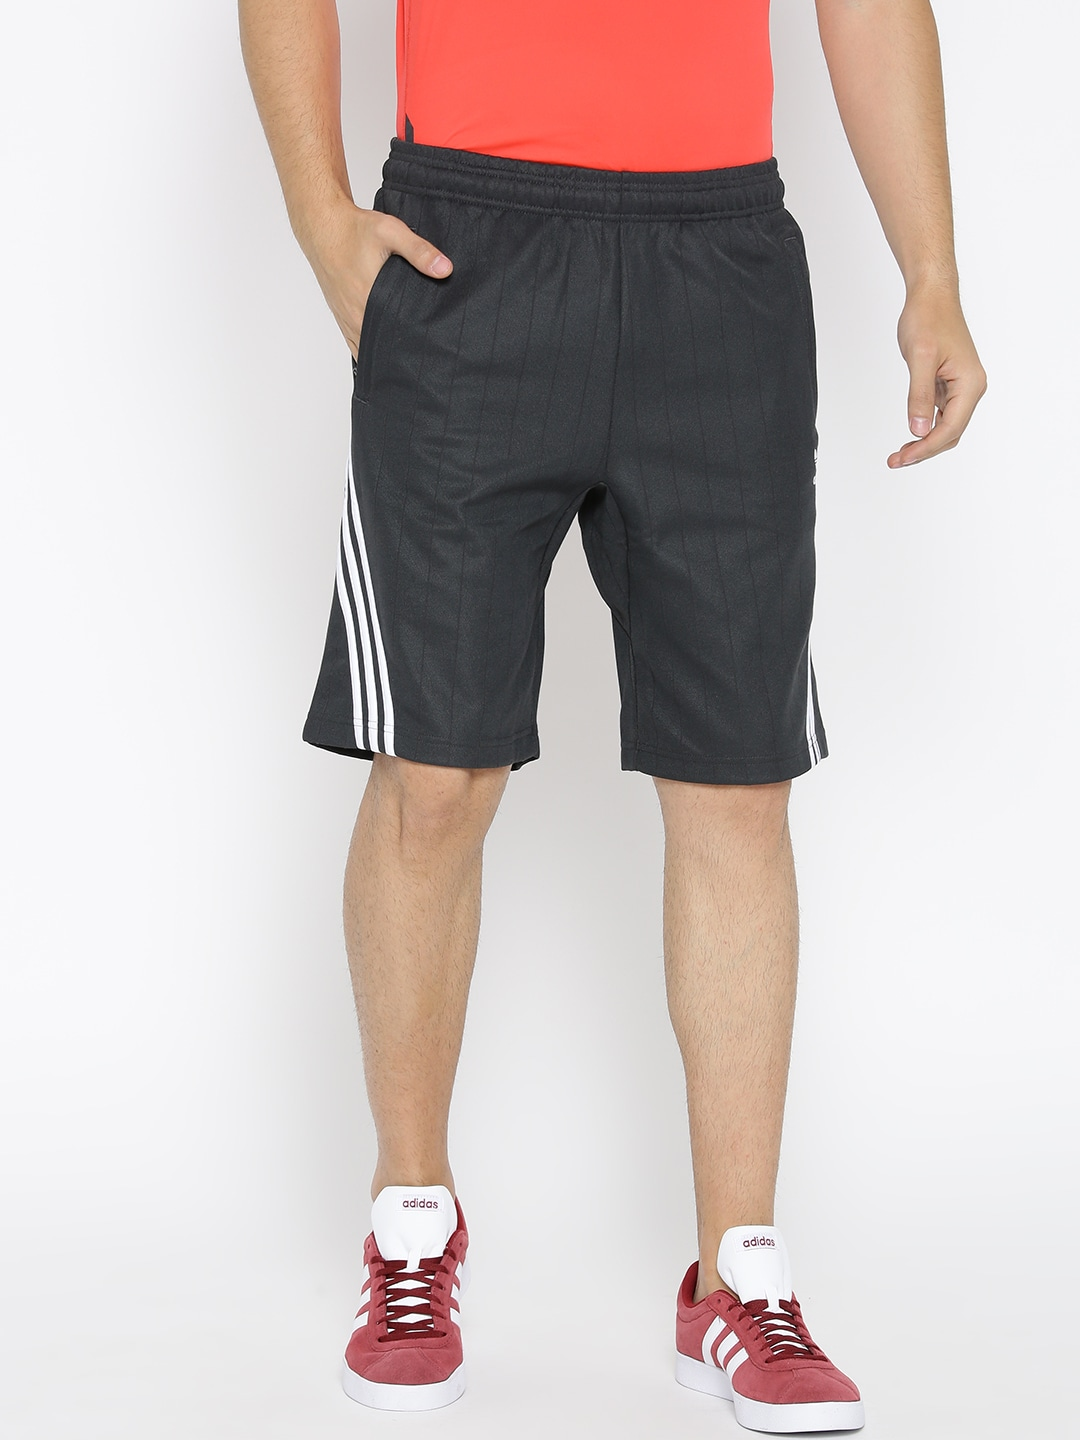 check out 40ff1 441fd Men Adidas Original Shorts - Buy Men Adidas Original Shorts online in India